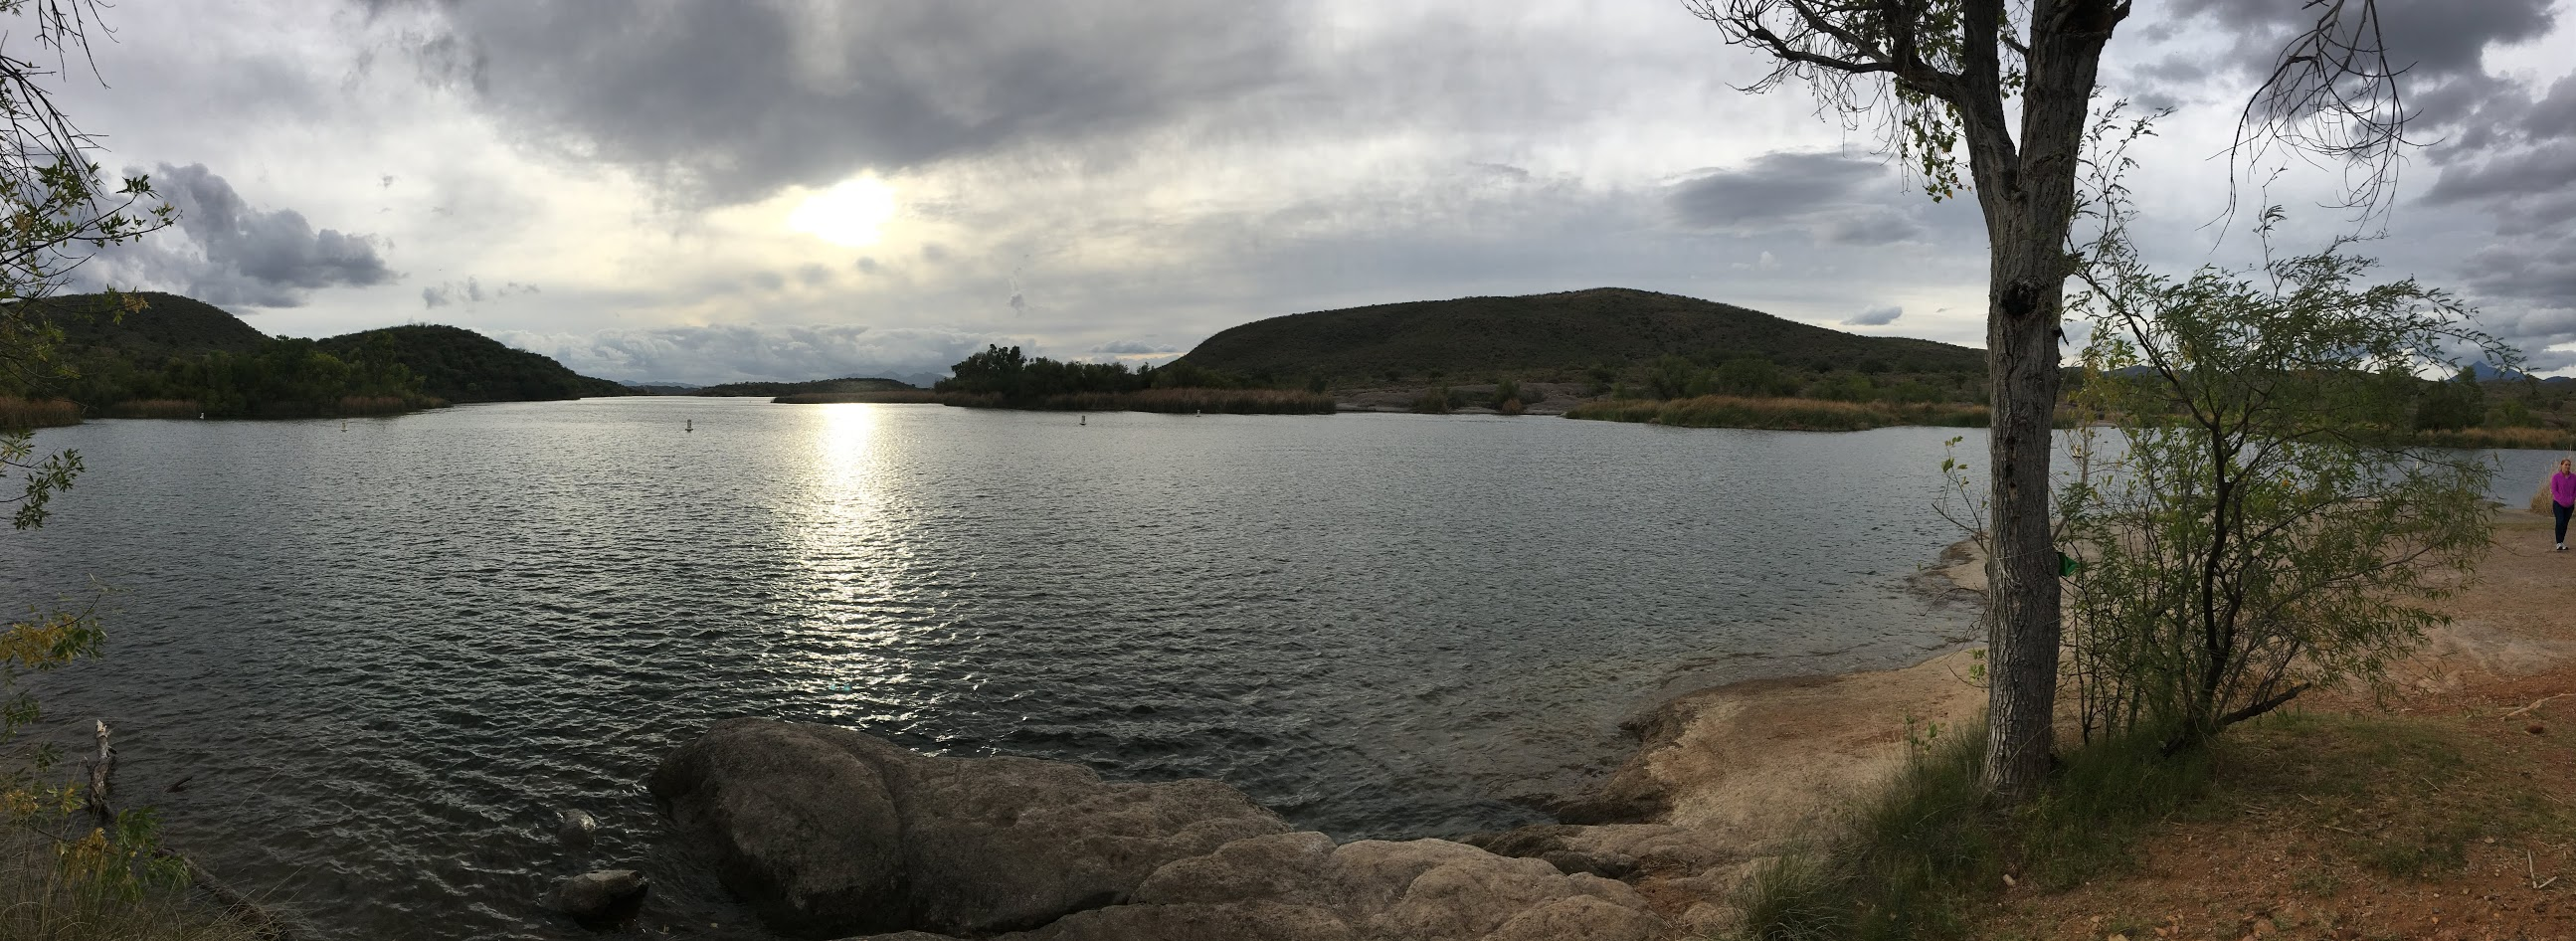 Image of Patagonia Lake in Santa Cruz county Arizona.